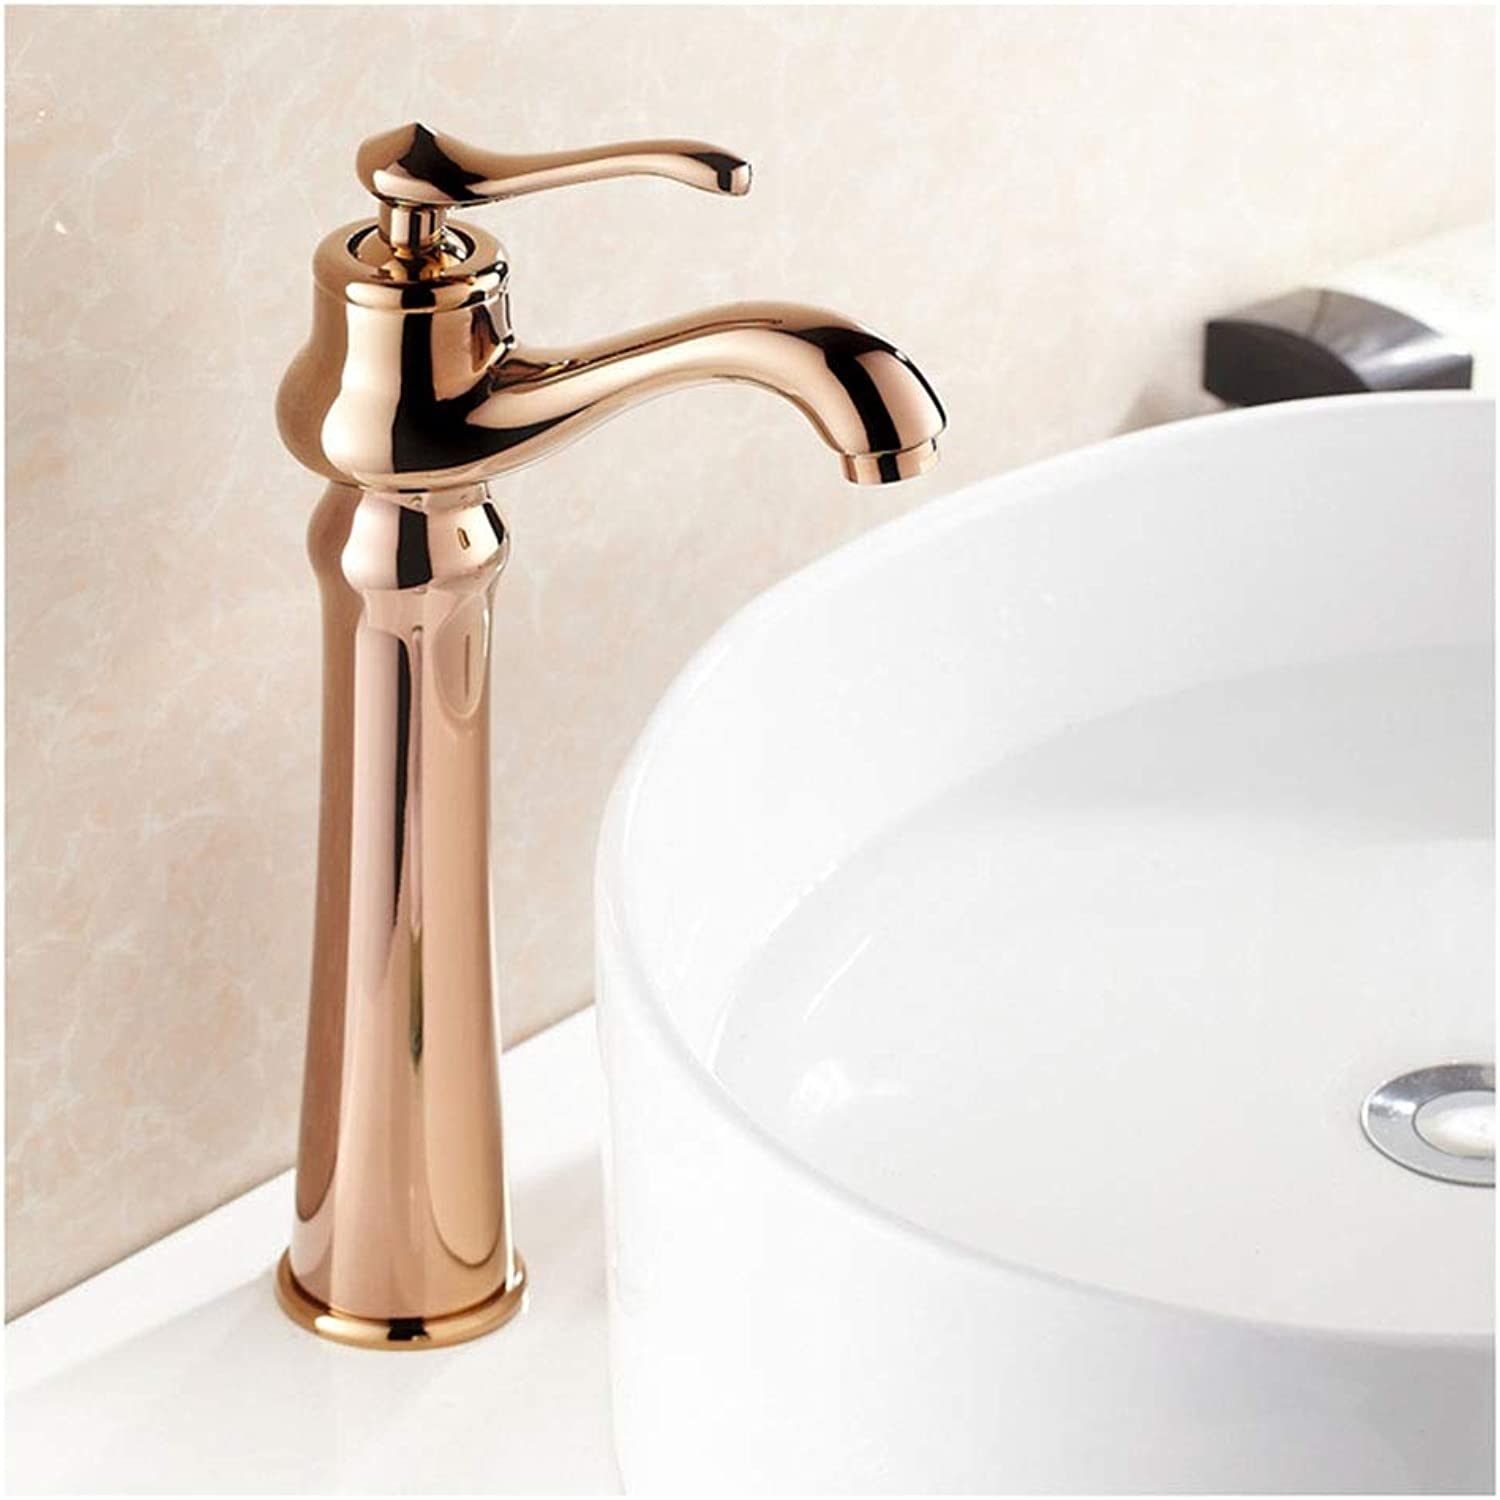 Kitchen Sink Taps Kitchen Sink Taps, Kitchen Basin Sink Mixer Tap 360 Degree redating Spout Hot And Cold Water Kitchen Faucet Brass Chrome - 0256